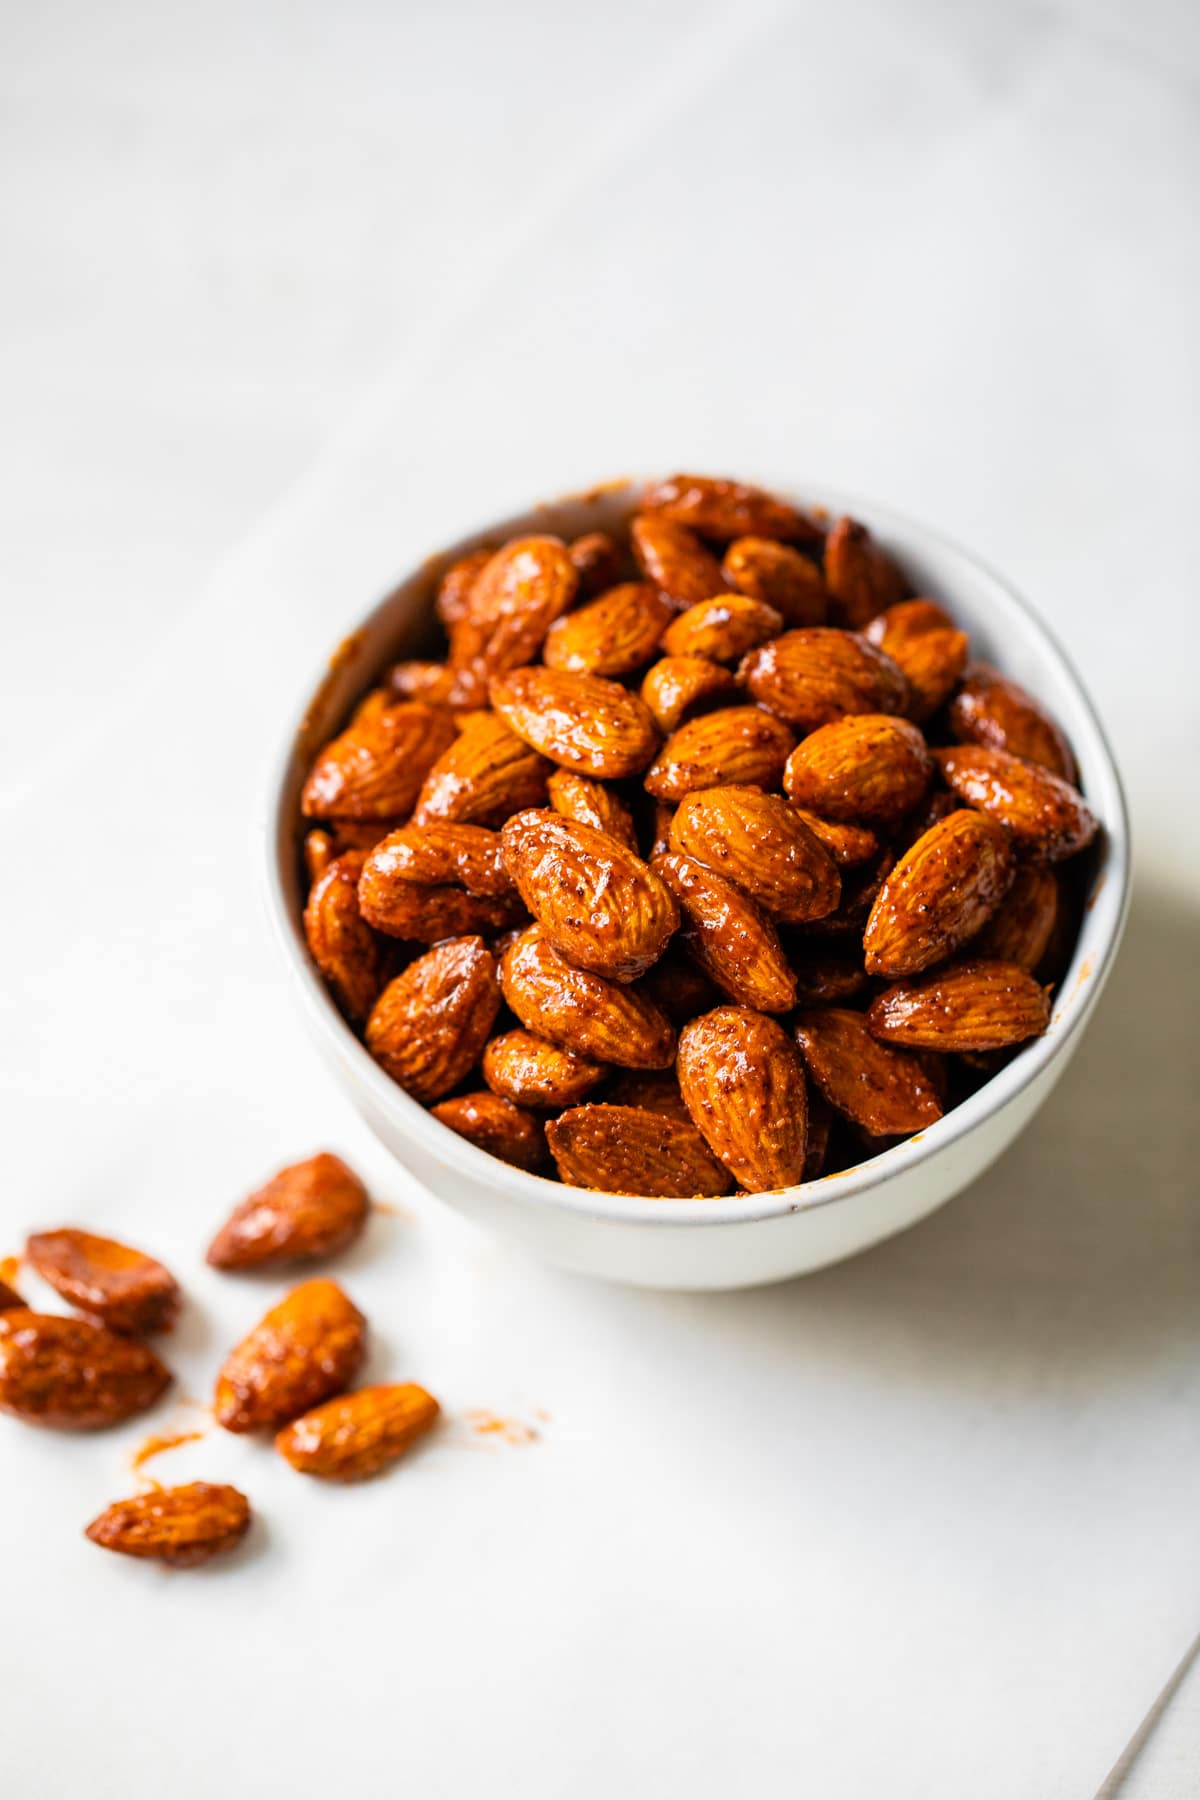 flavored almonds in a bowl